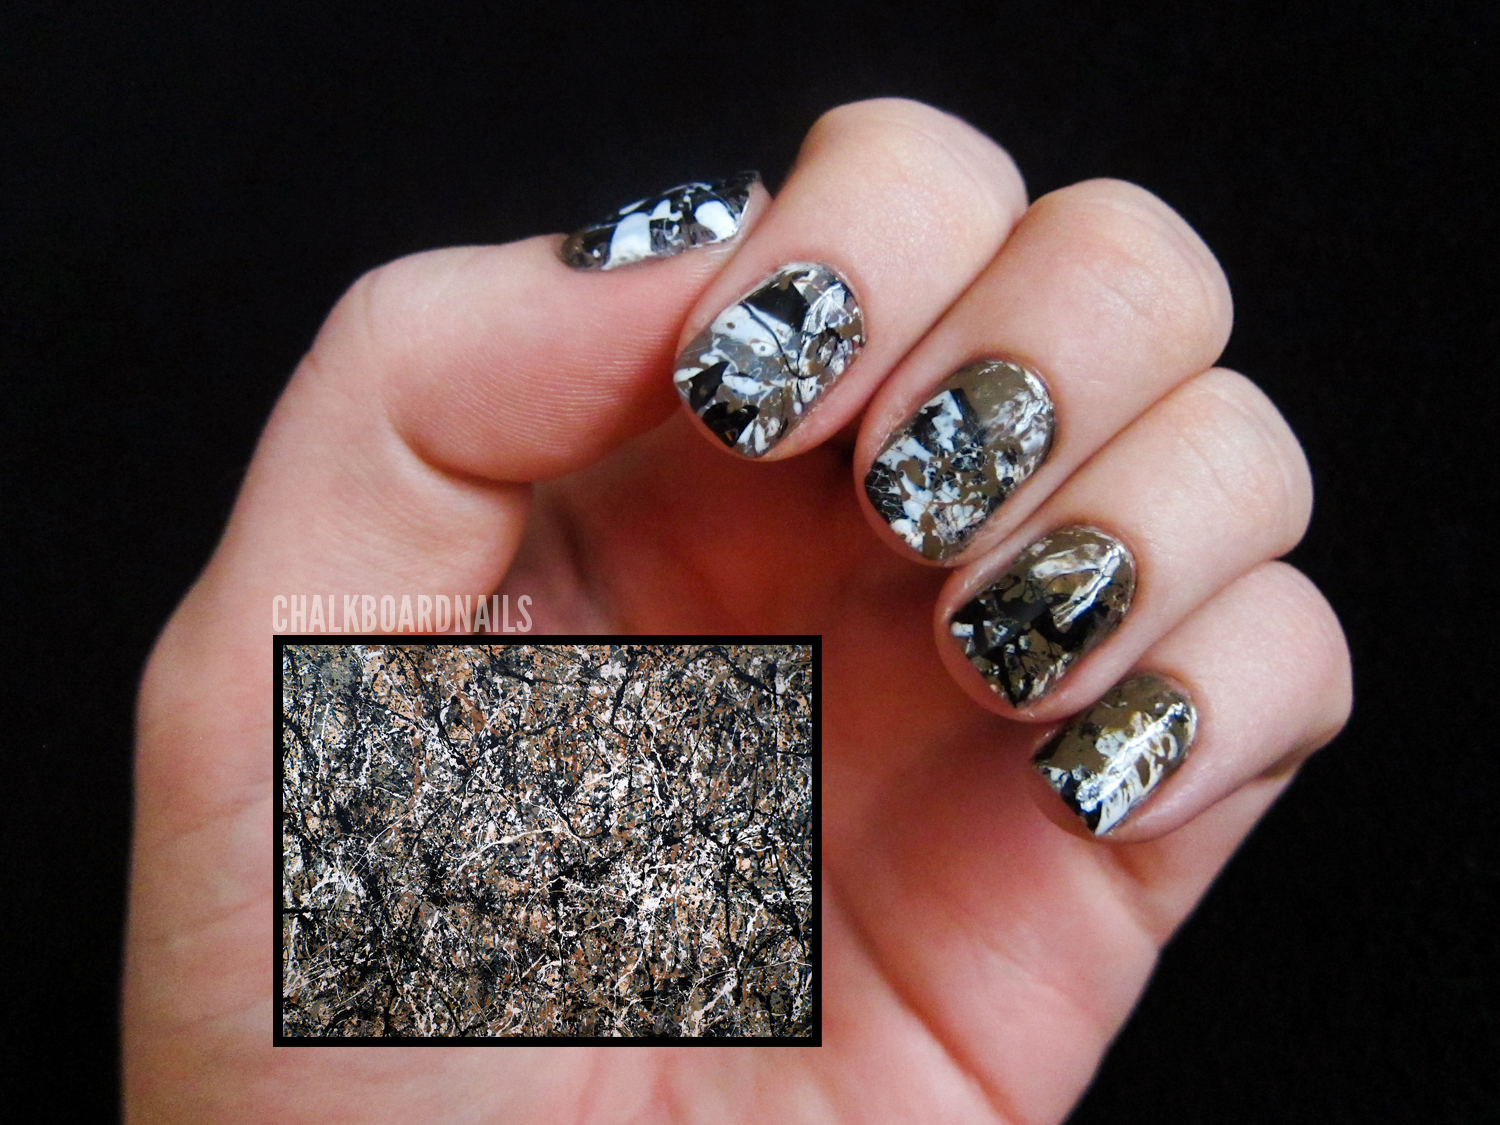 31 Day Challenge, Day 27: Inspired by Artwork | Chalkboard Nails ...